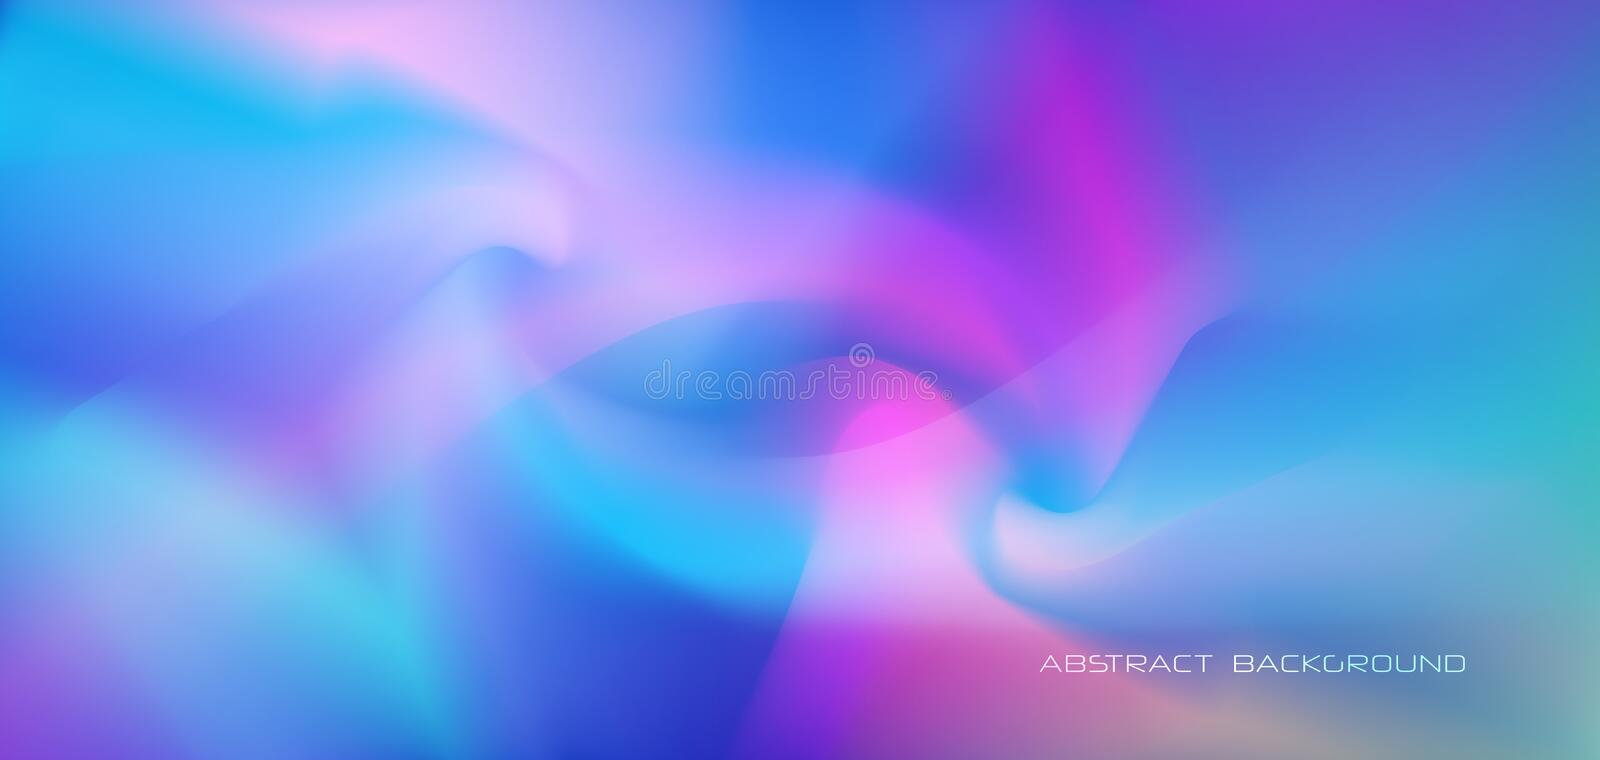 Illustration abstract glowing, neon light, minimal bright fluid, liquid gradient background. Vector modern trendy, graphic design royalty free illustration